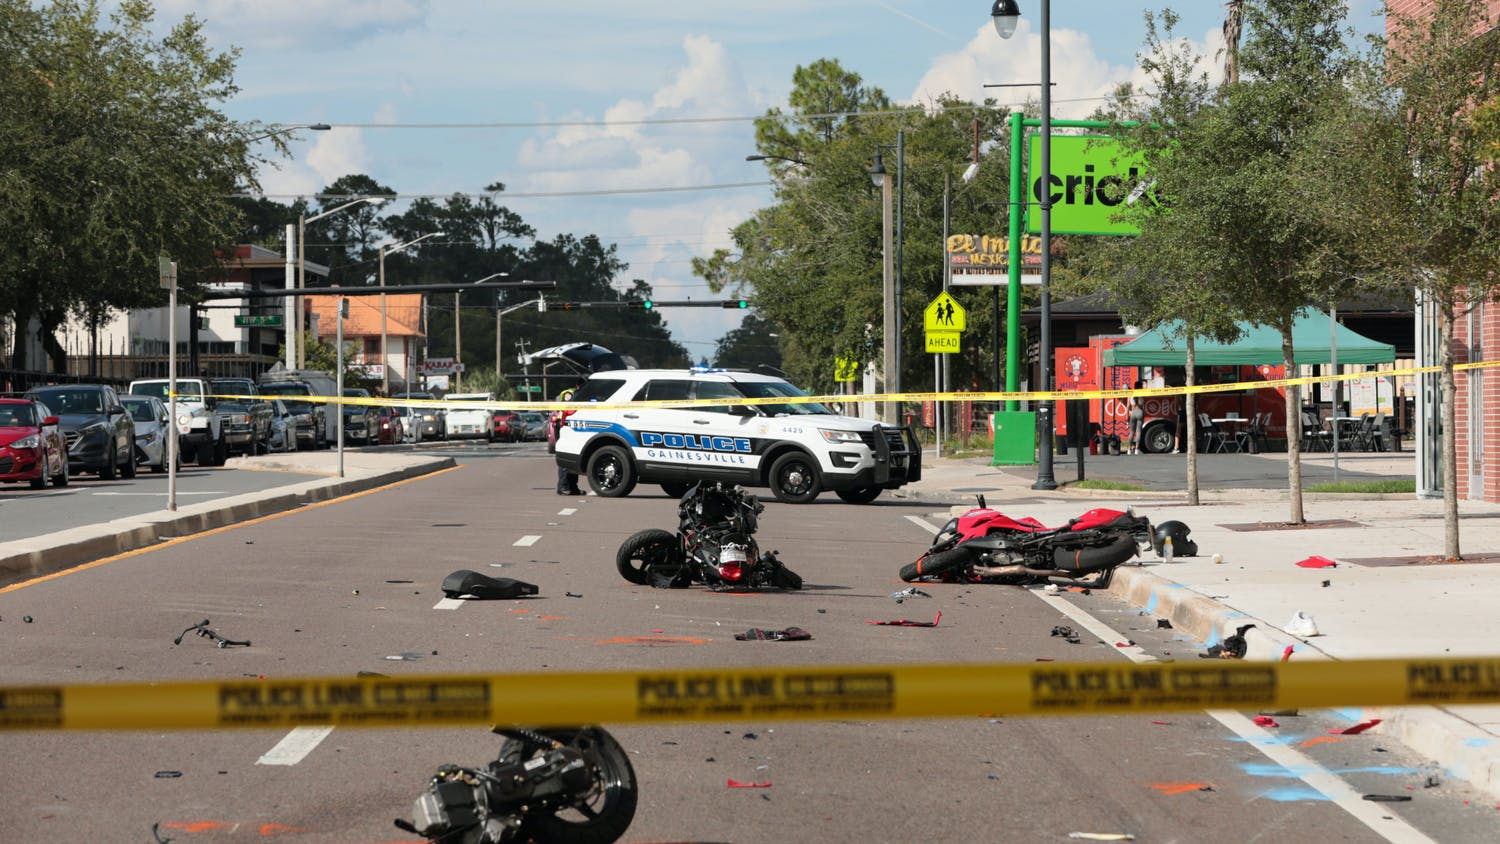 Remnants of a motorcycle accident are seen on the corner of 3rd Avenue and West University Avenue in front of Krispy Kreme on Friday, Oct. 1, 2021.